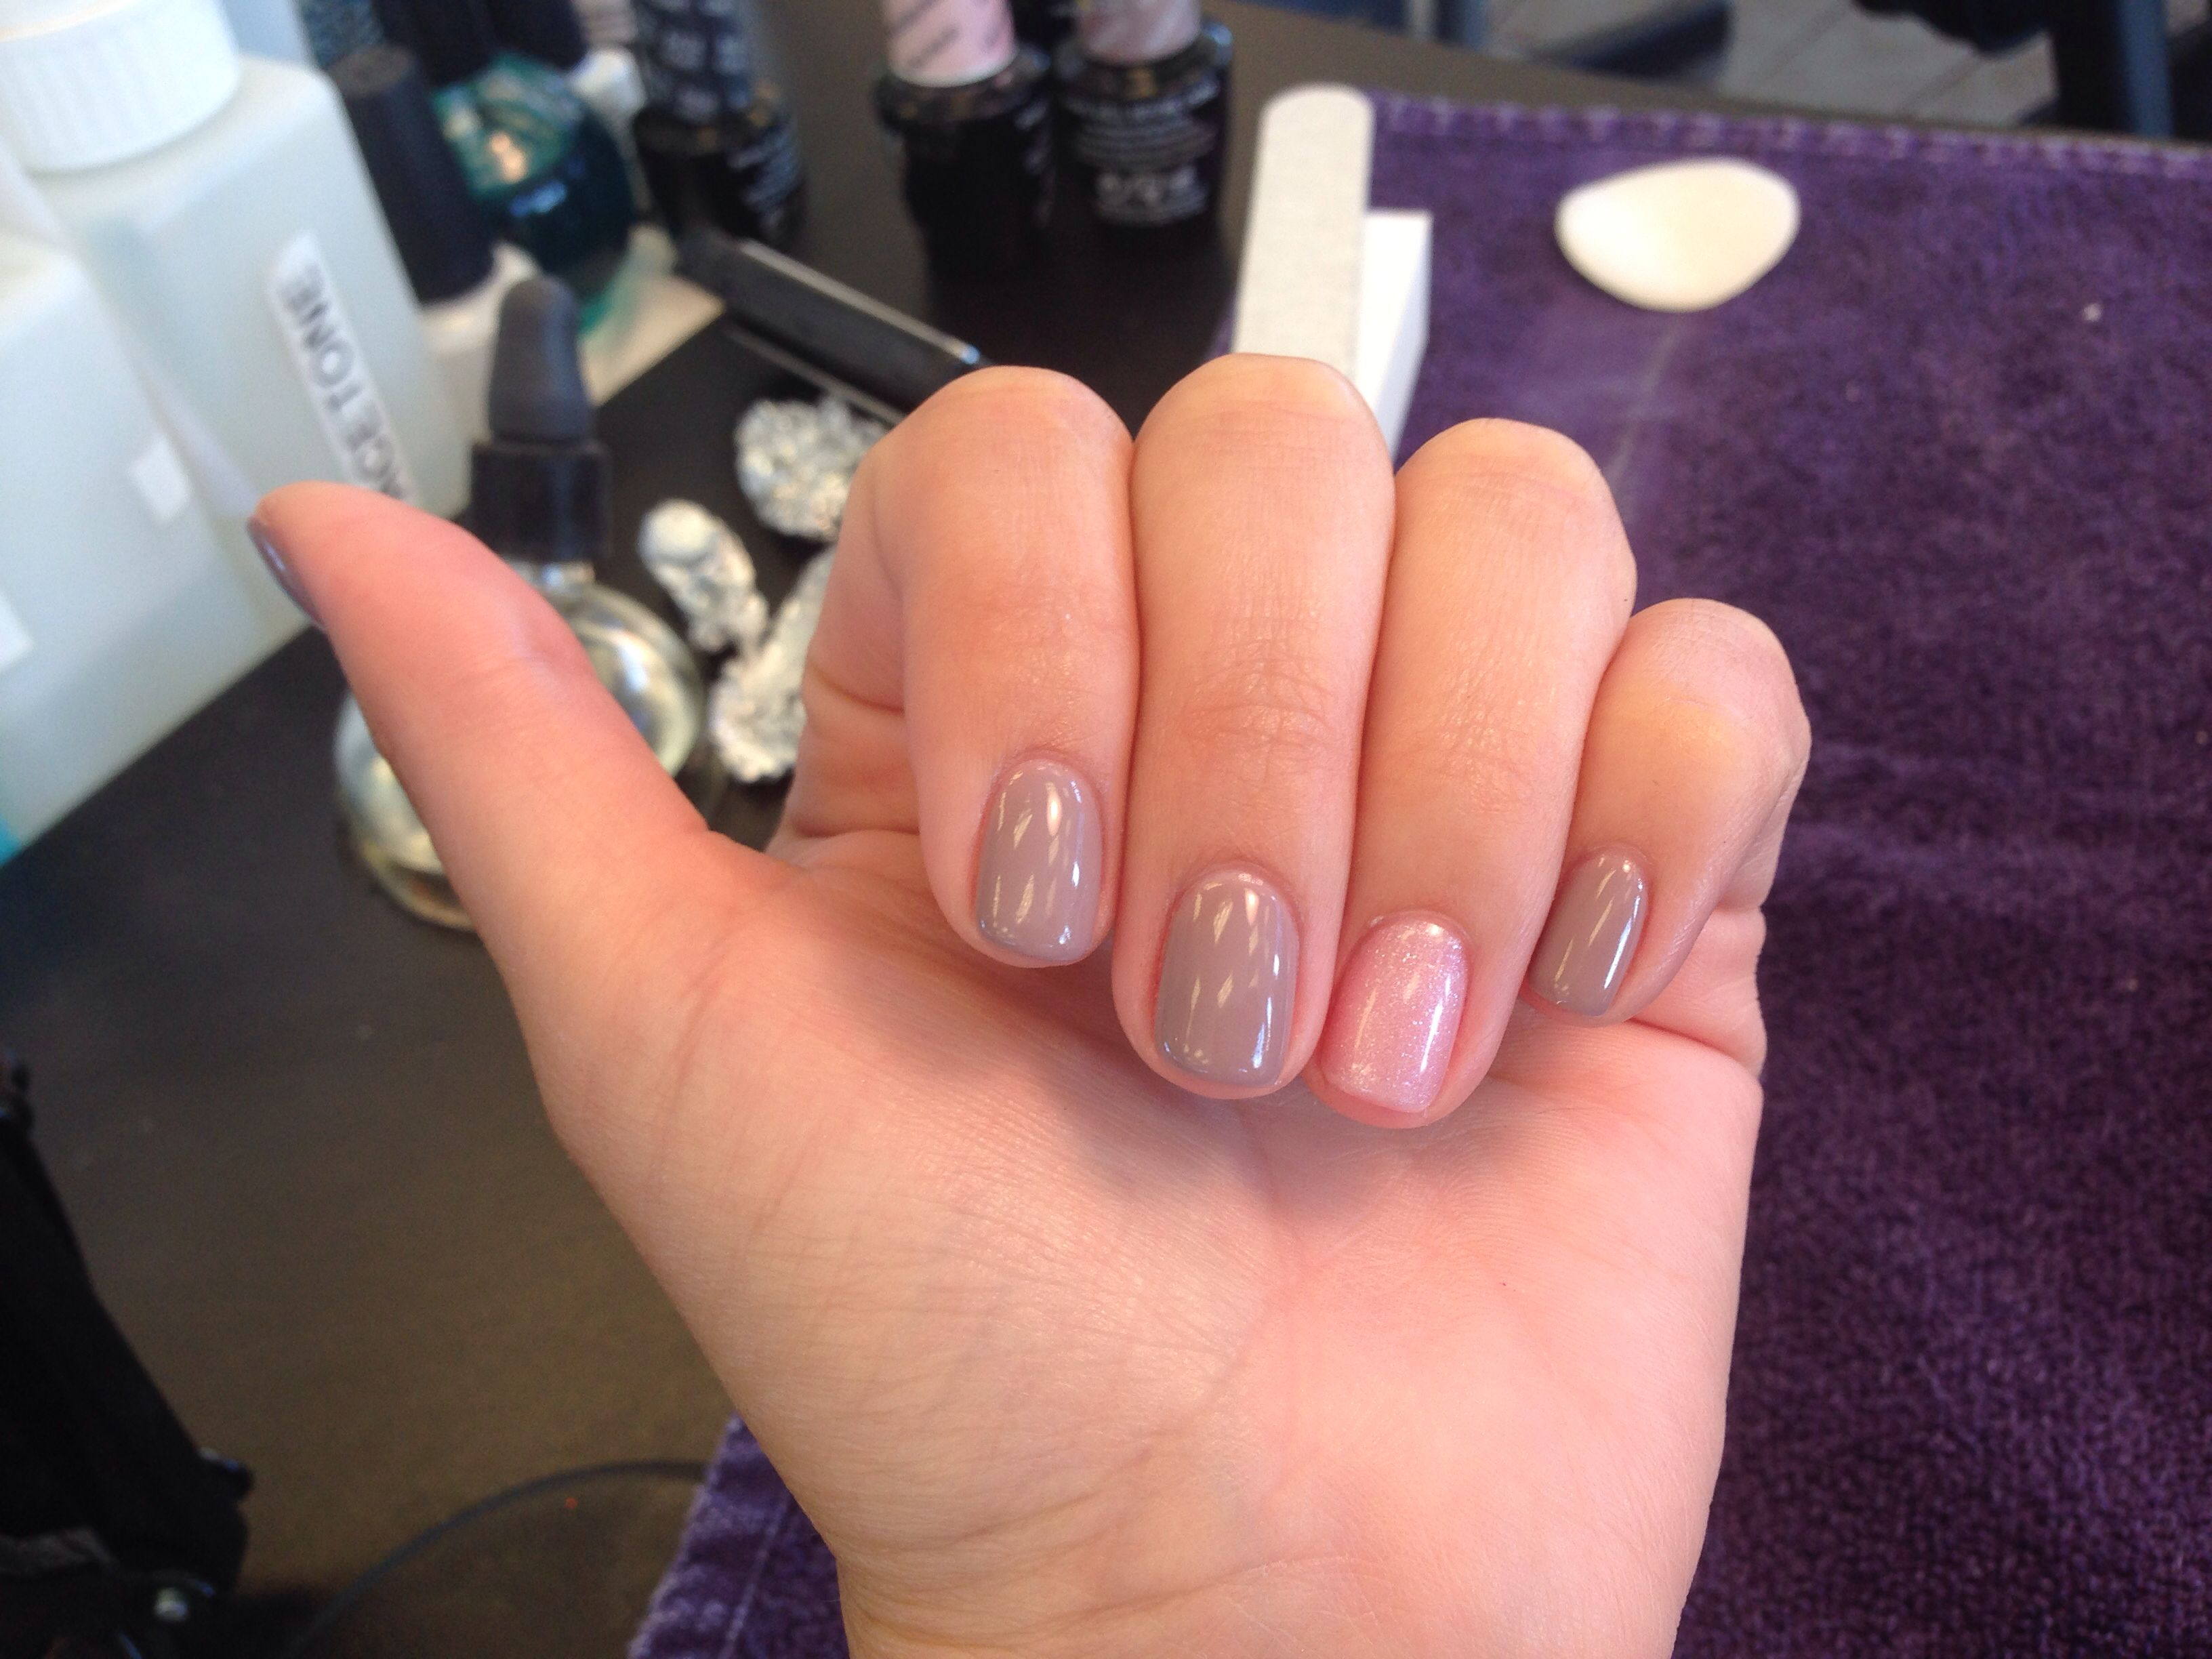 Taupeless beach and princesses rule OPI gel color 9/5   Nails ...